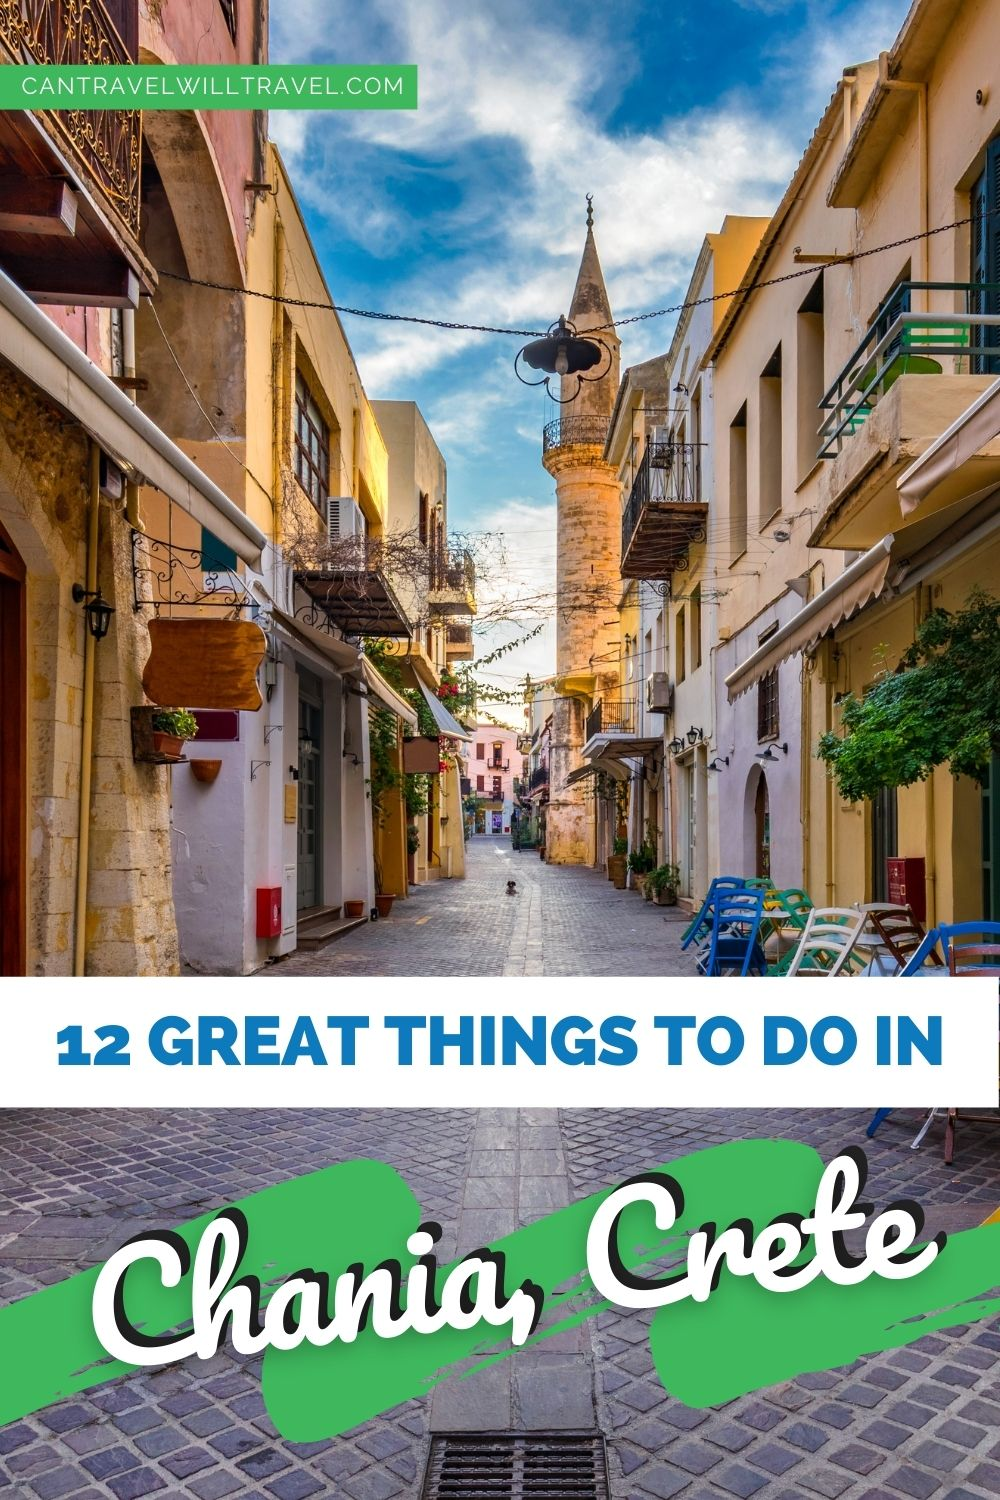 12 Great Things to Do in Chania, Crete, Greece